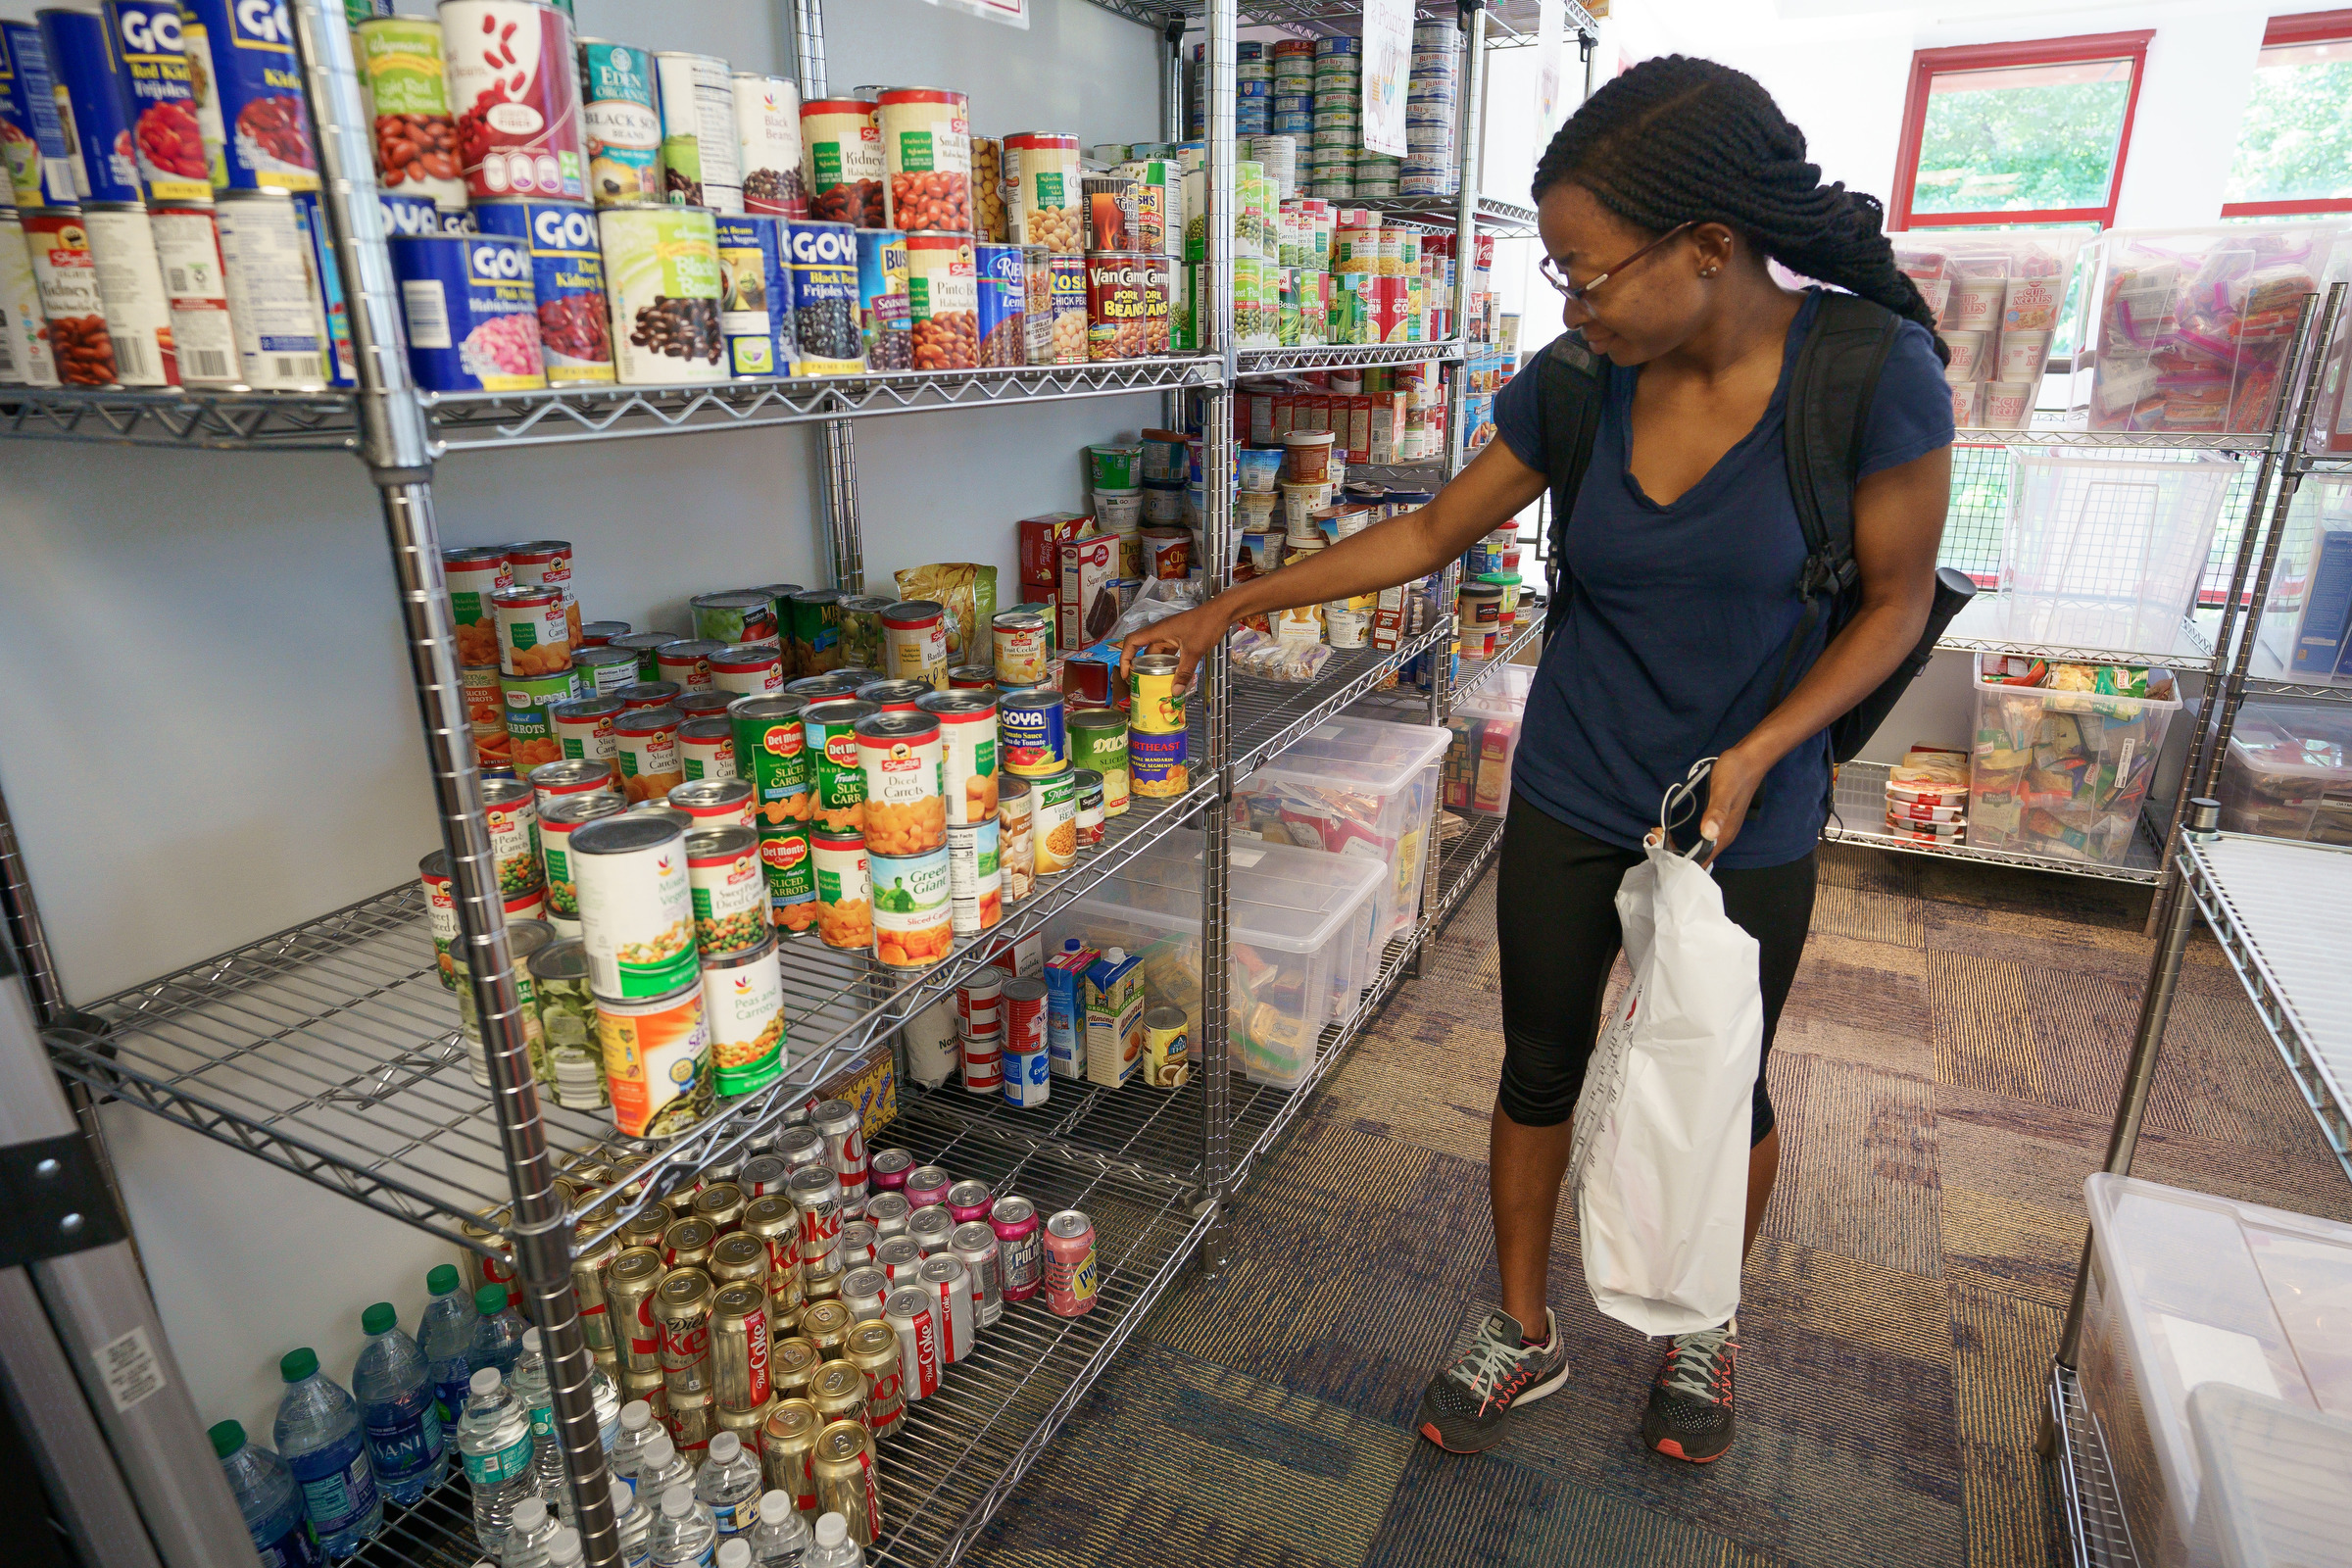 Graduate student Sharon Okune selects groceries at the Temple University food pantry, in Philadelphia, Thursday, August 09, 2018.